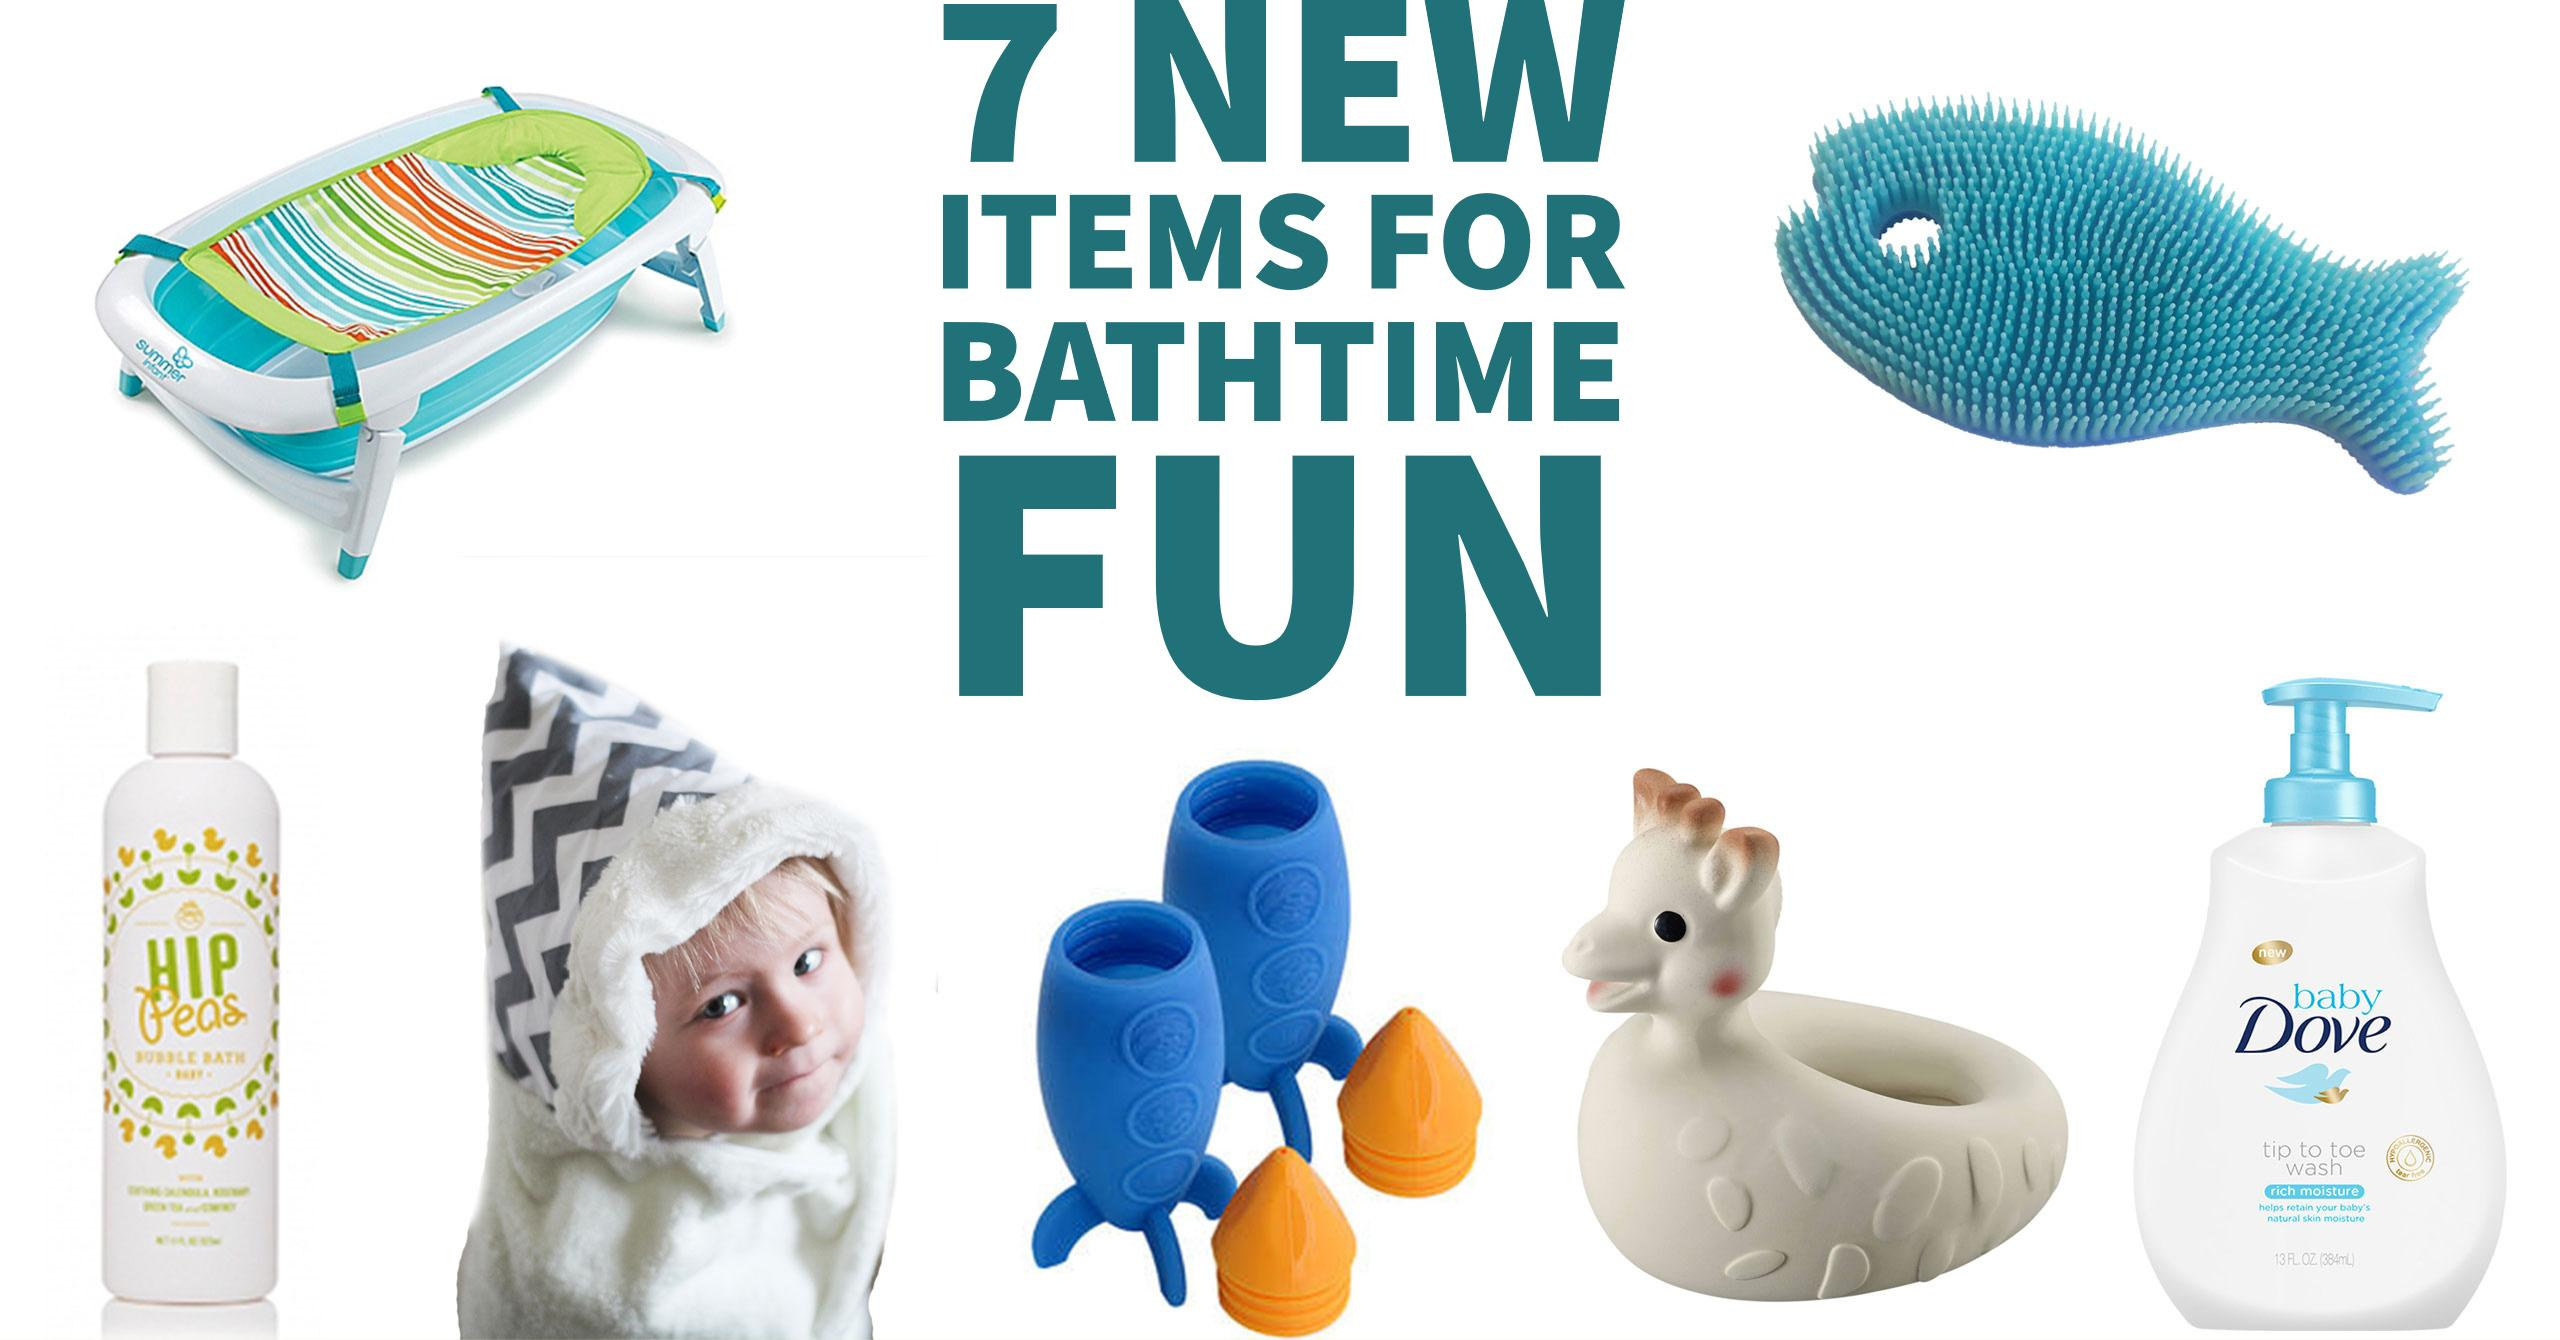 7 New Items for Bathtime Fun